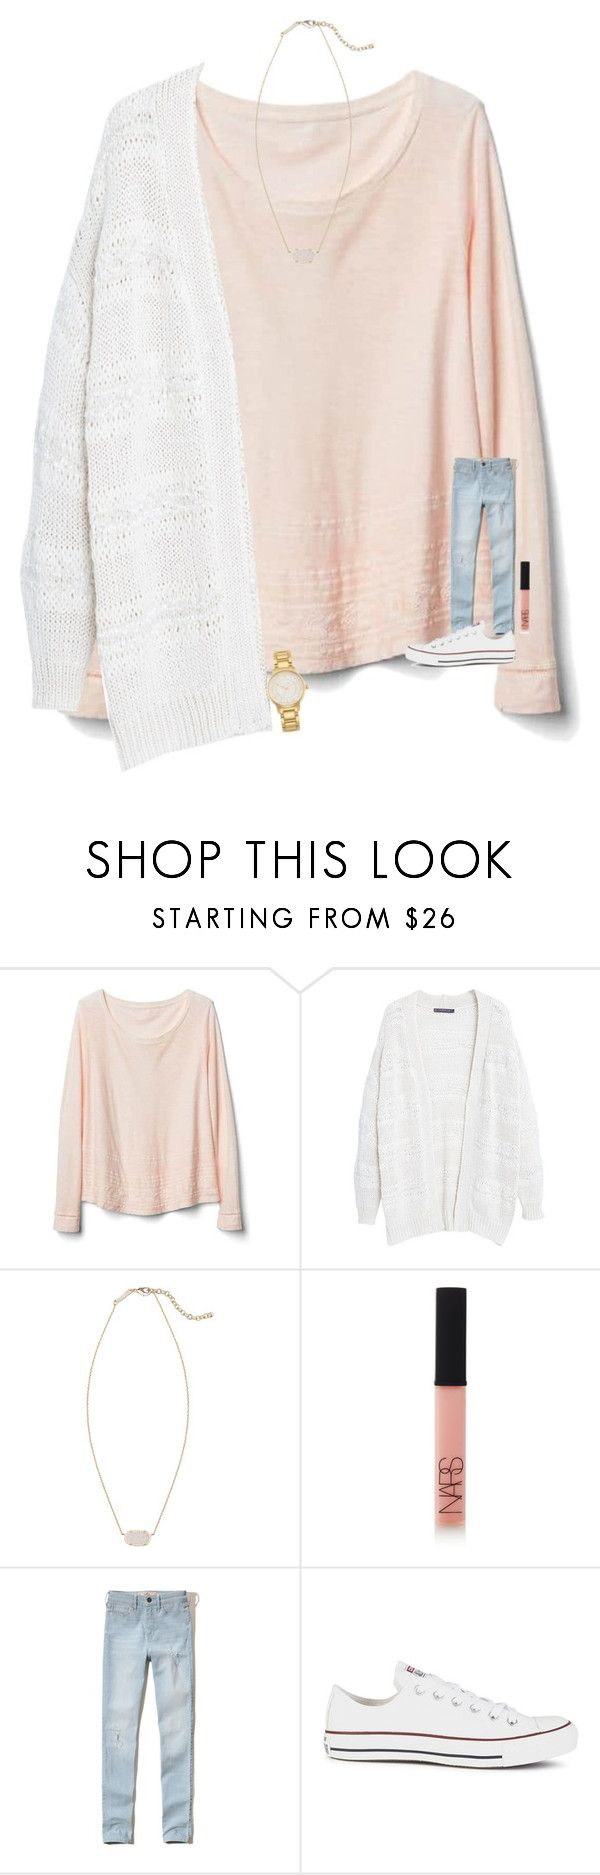 """""""gotta do some hw """" by madelinelurene ❤ liked on Polyvore featuring Gap, Violeta by Mango, Kendra Scott, NARS Cosmetics, Hollister Co., Converse and Kate Spade"""